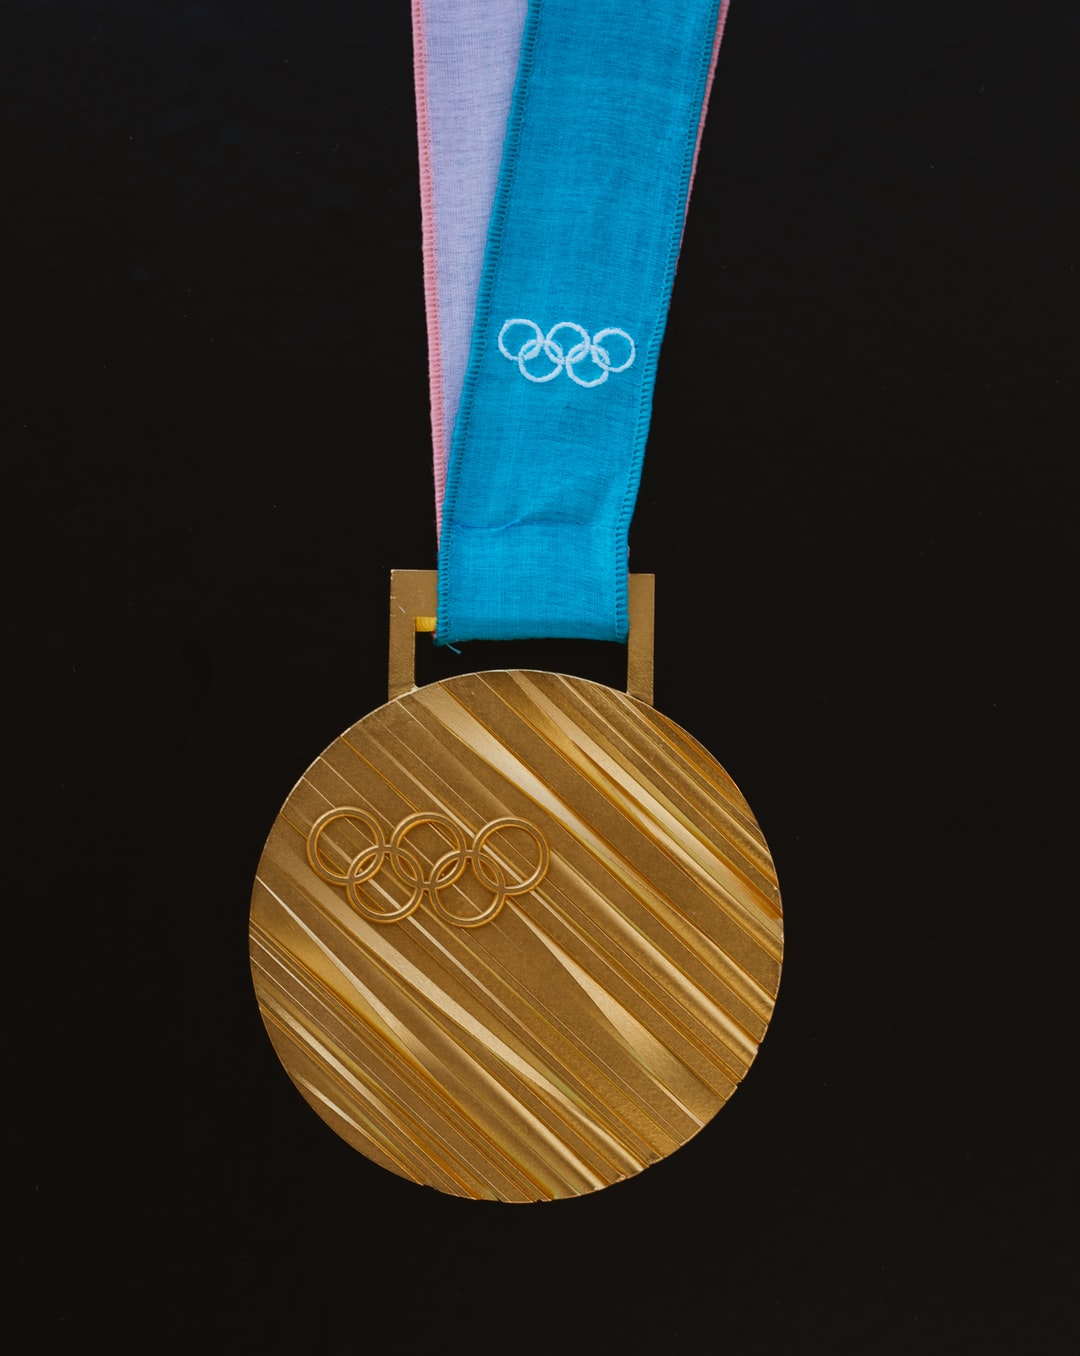 Gold Medal for the 2018 Winter Olympics